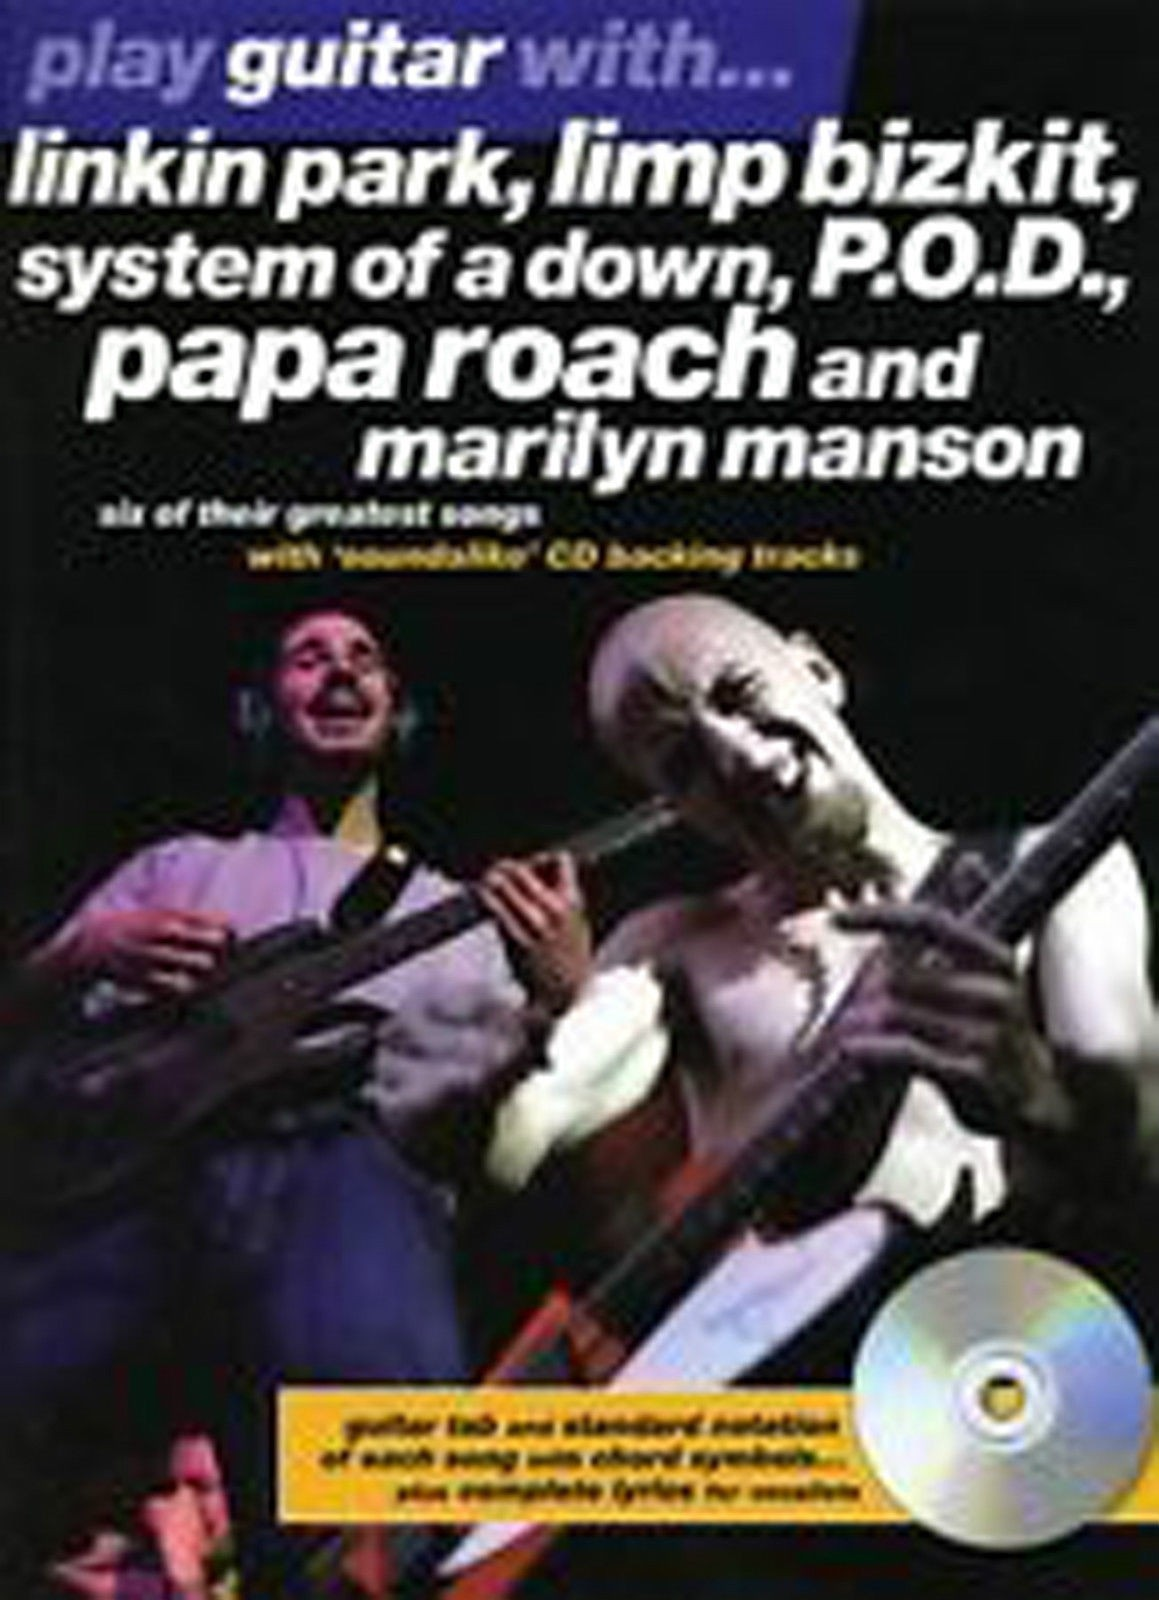 Play Guitar with Linkin Park Limp Bizkit System of a Down P.O.D TAB Book CD B47